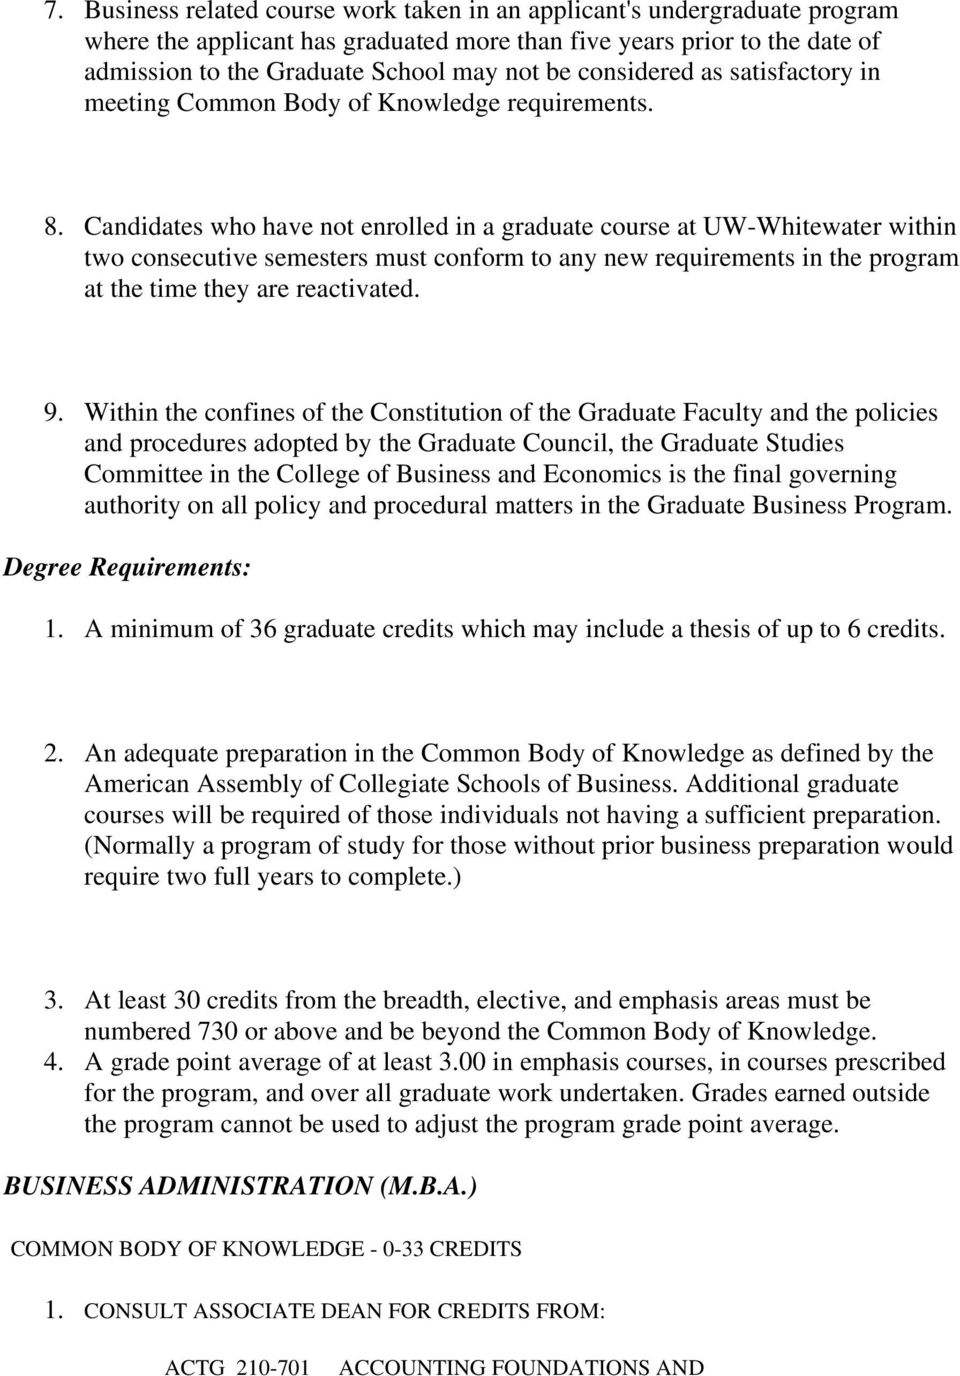 Candidates who have not enrolled in a graduate course at UW-Whitewater within two consecutive semesters must conform to any new requirements in the program at the time they are reactivated. 9.